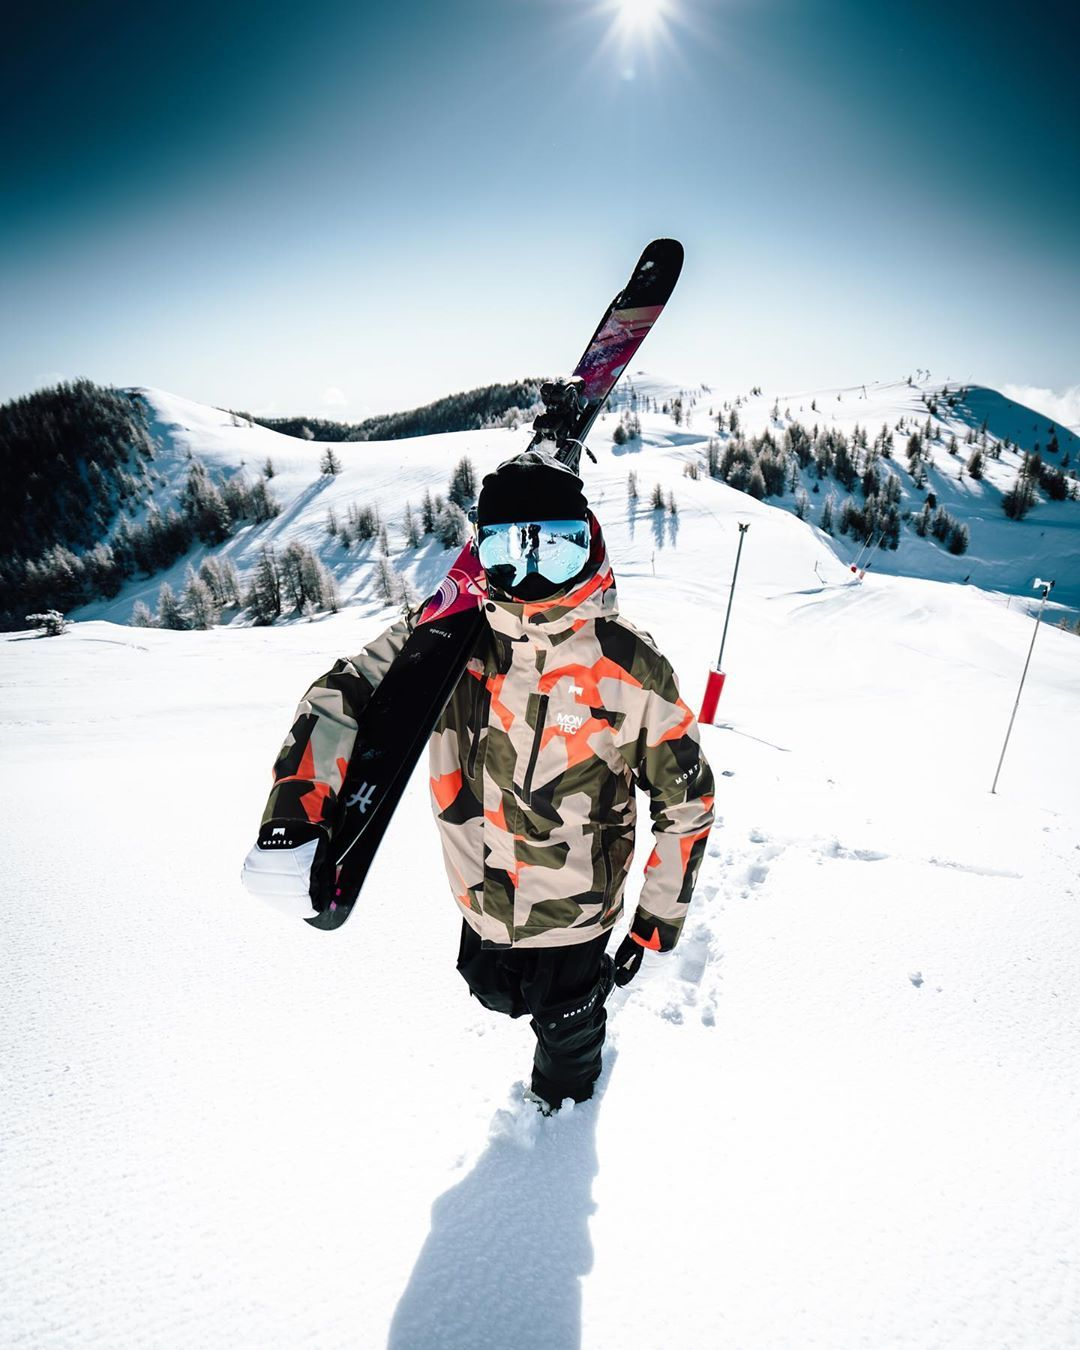 Camo Ski And Snowboard Jacket And Pants In 2021 Snowboarding Style Snowboarding Outfit Skiing Outfit